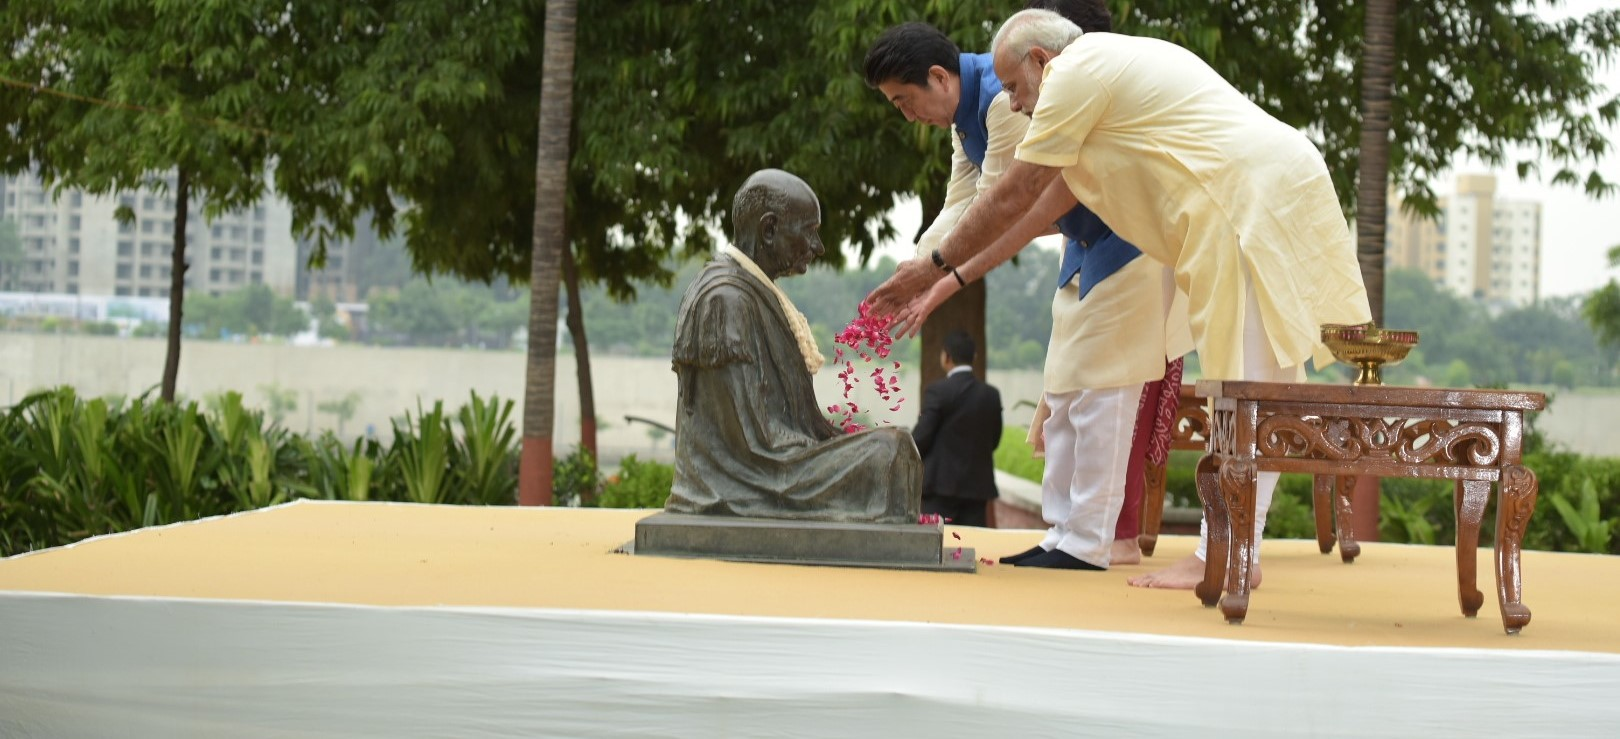 India's Prime Minister Modi and Japanese PM Shinzo Abe pay tributes to Mahatma Gandhi, at Sabarmati Ashram in Gujarat. (Photo: MEAPhotogallery/Flickr)